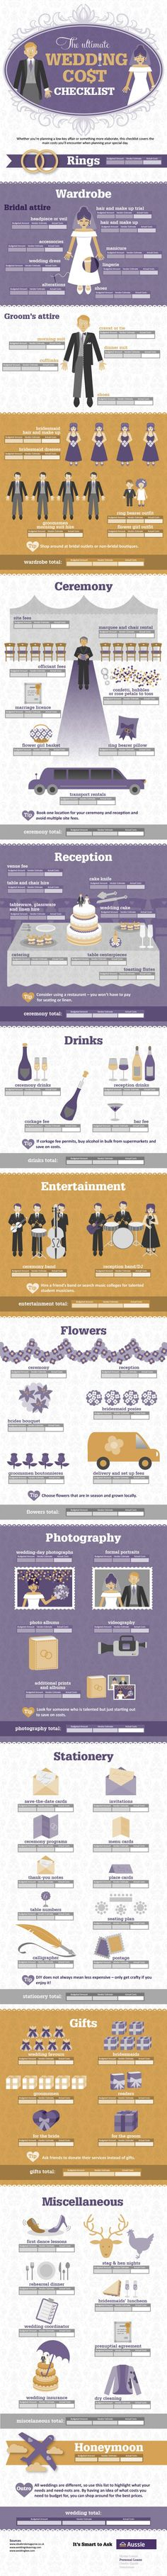 The ultimate wedding cost checklist.